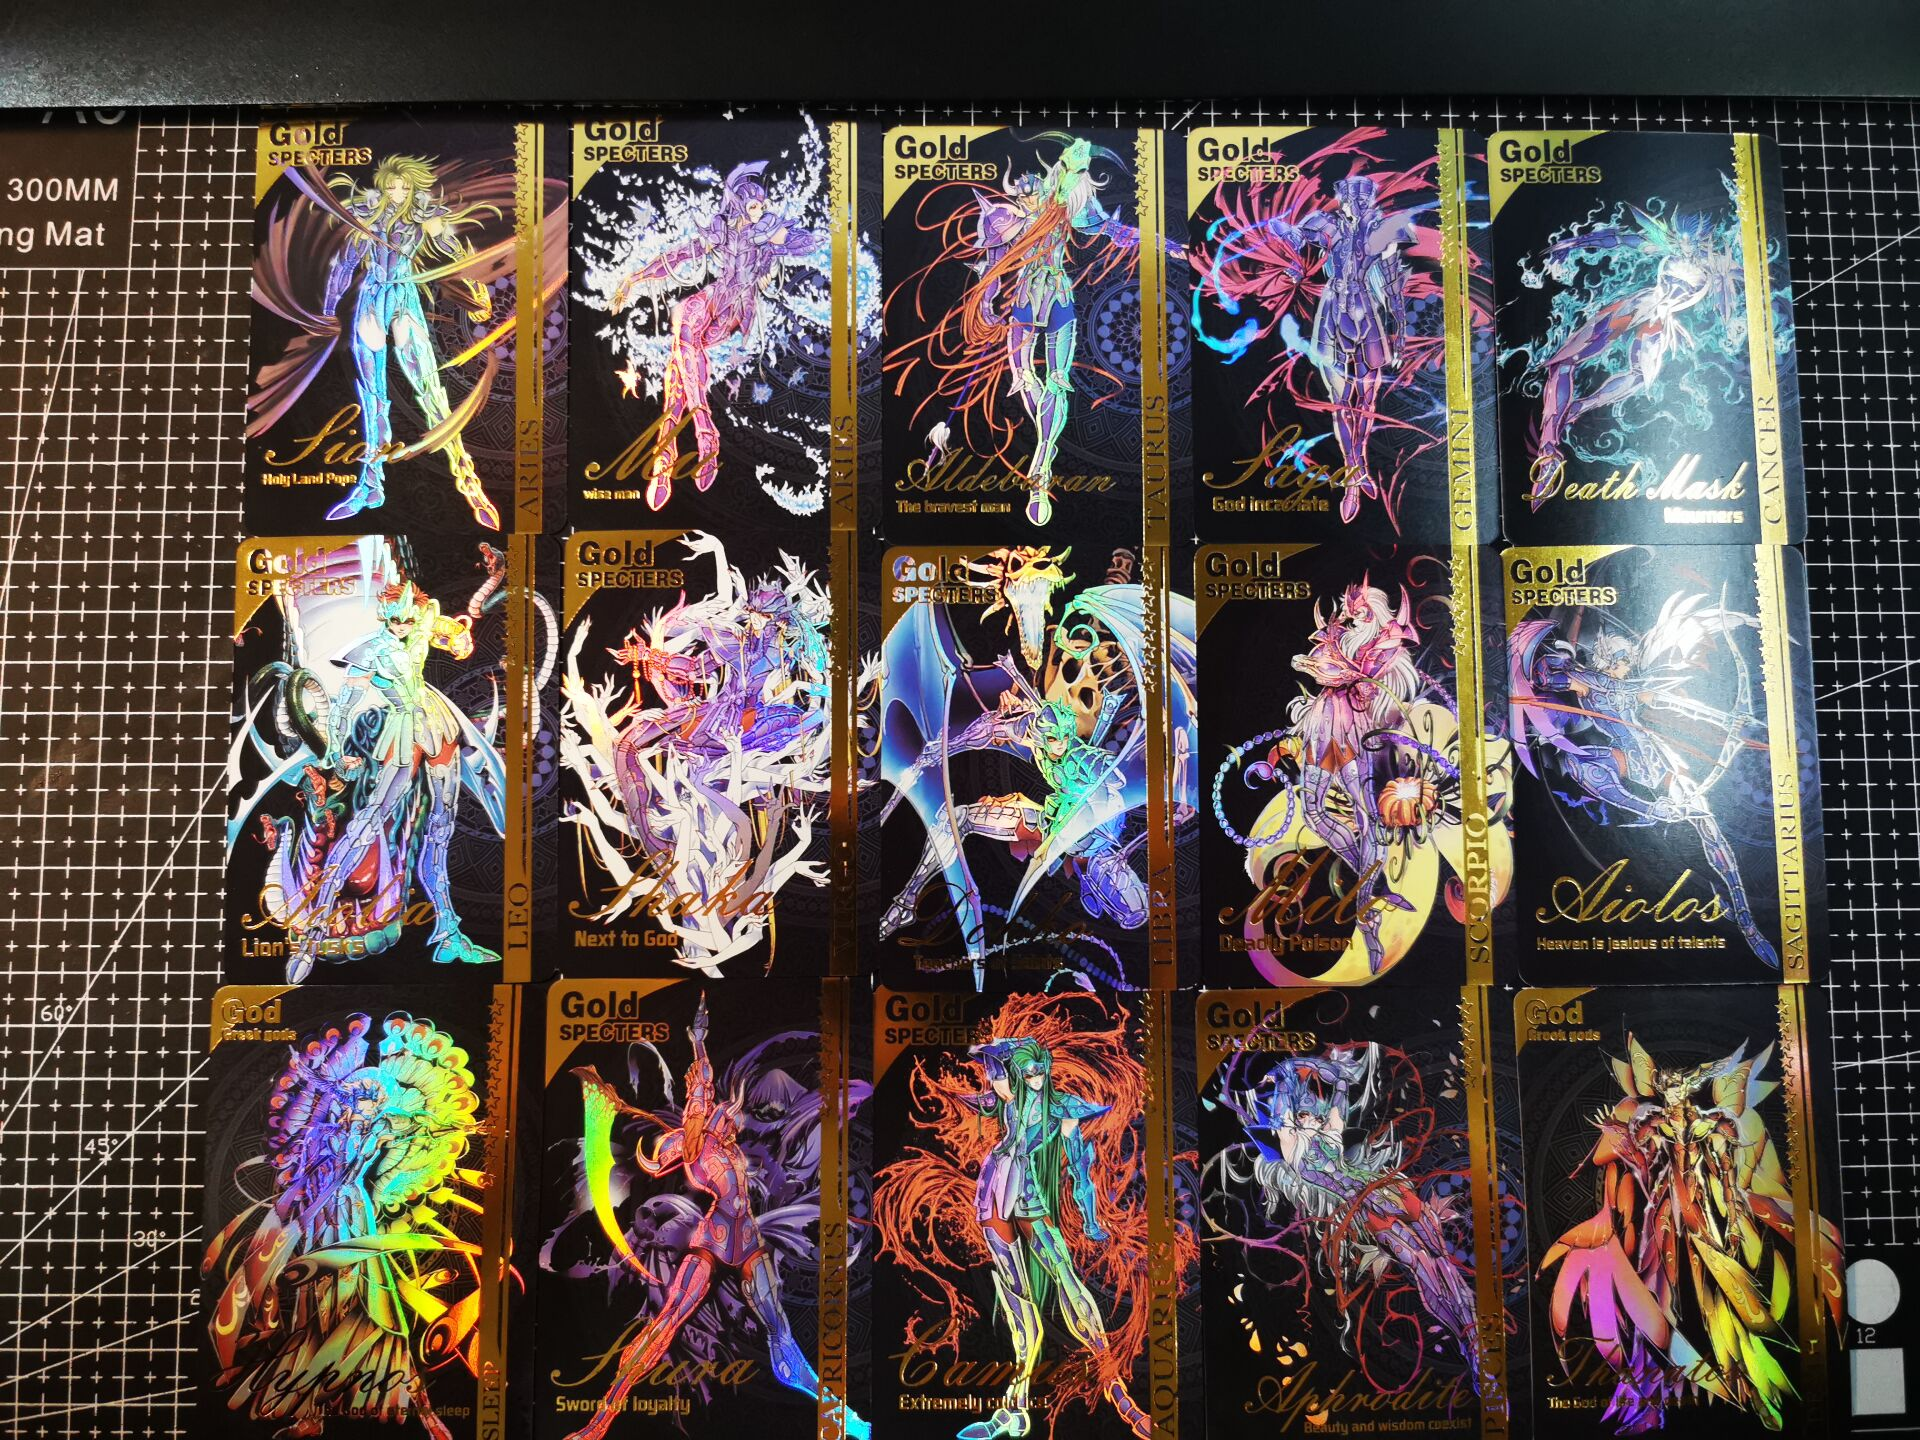 15pcs/set Saint Seiya Holy Color 7 Conclusion Toys Hobbies Hobby Collectibles Game Collection Anime Cards